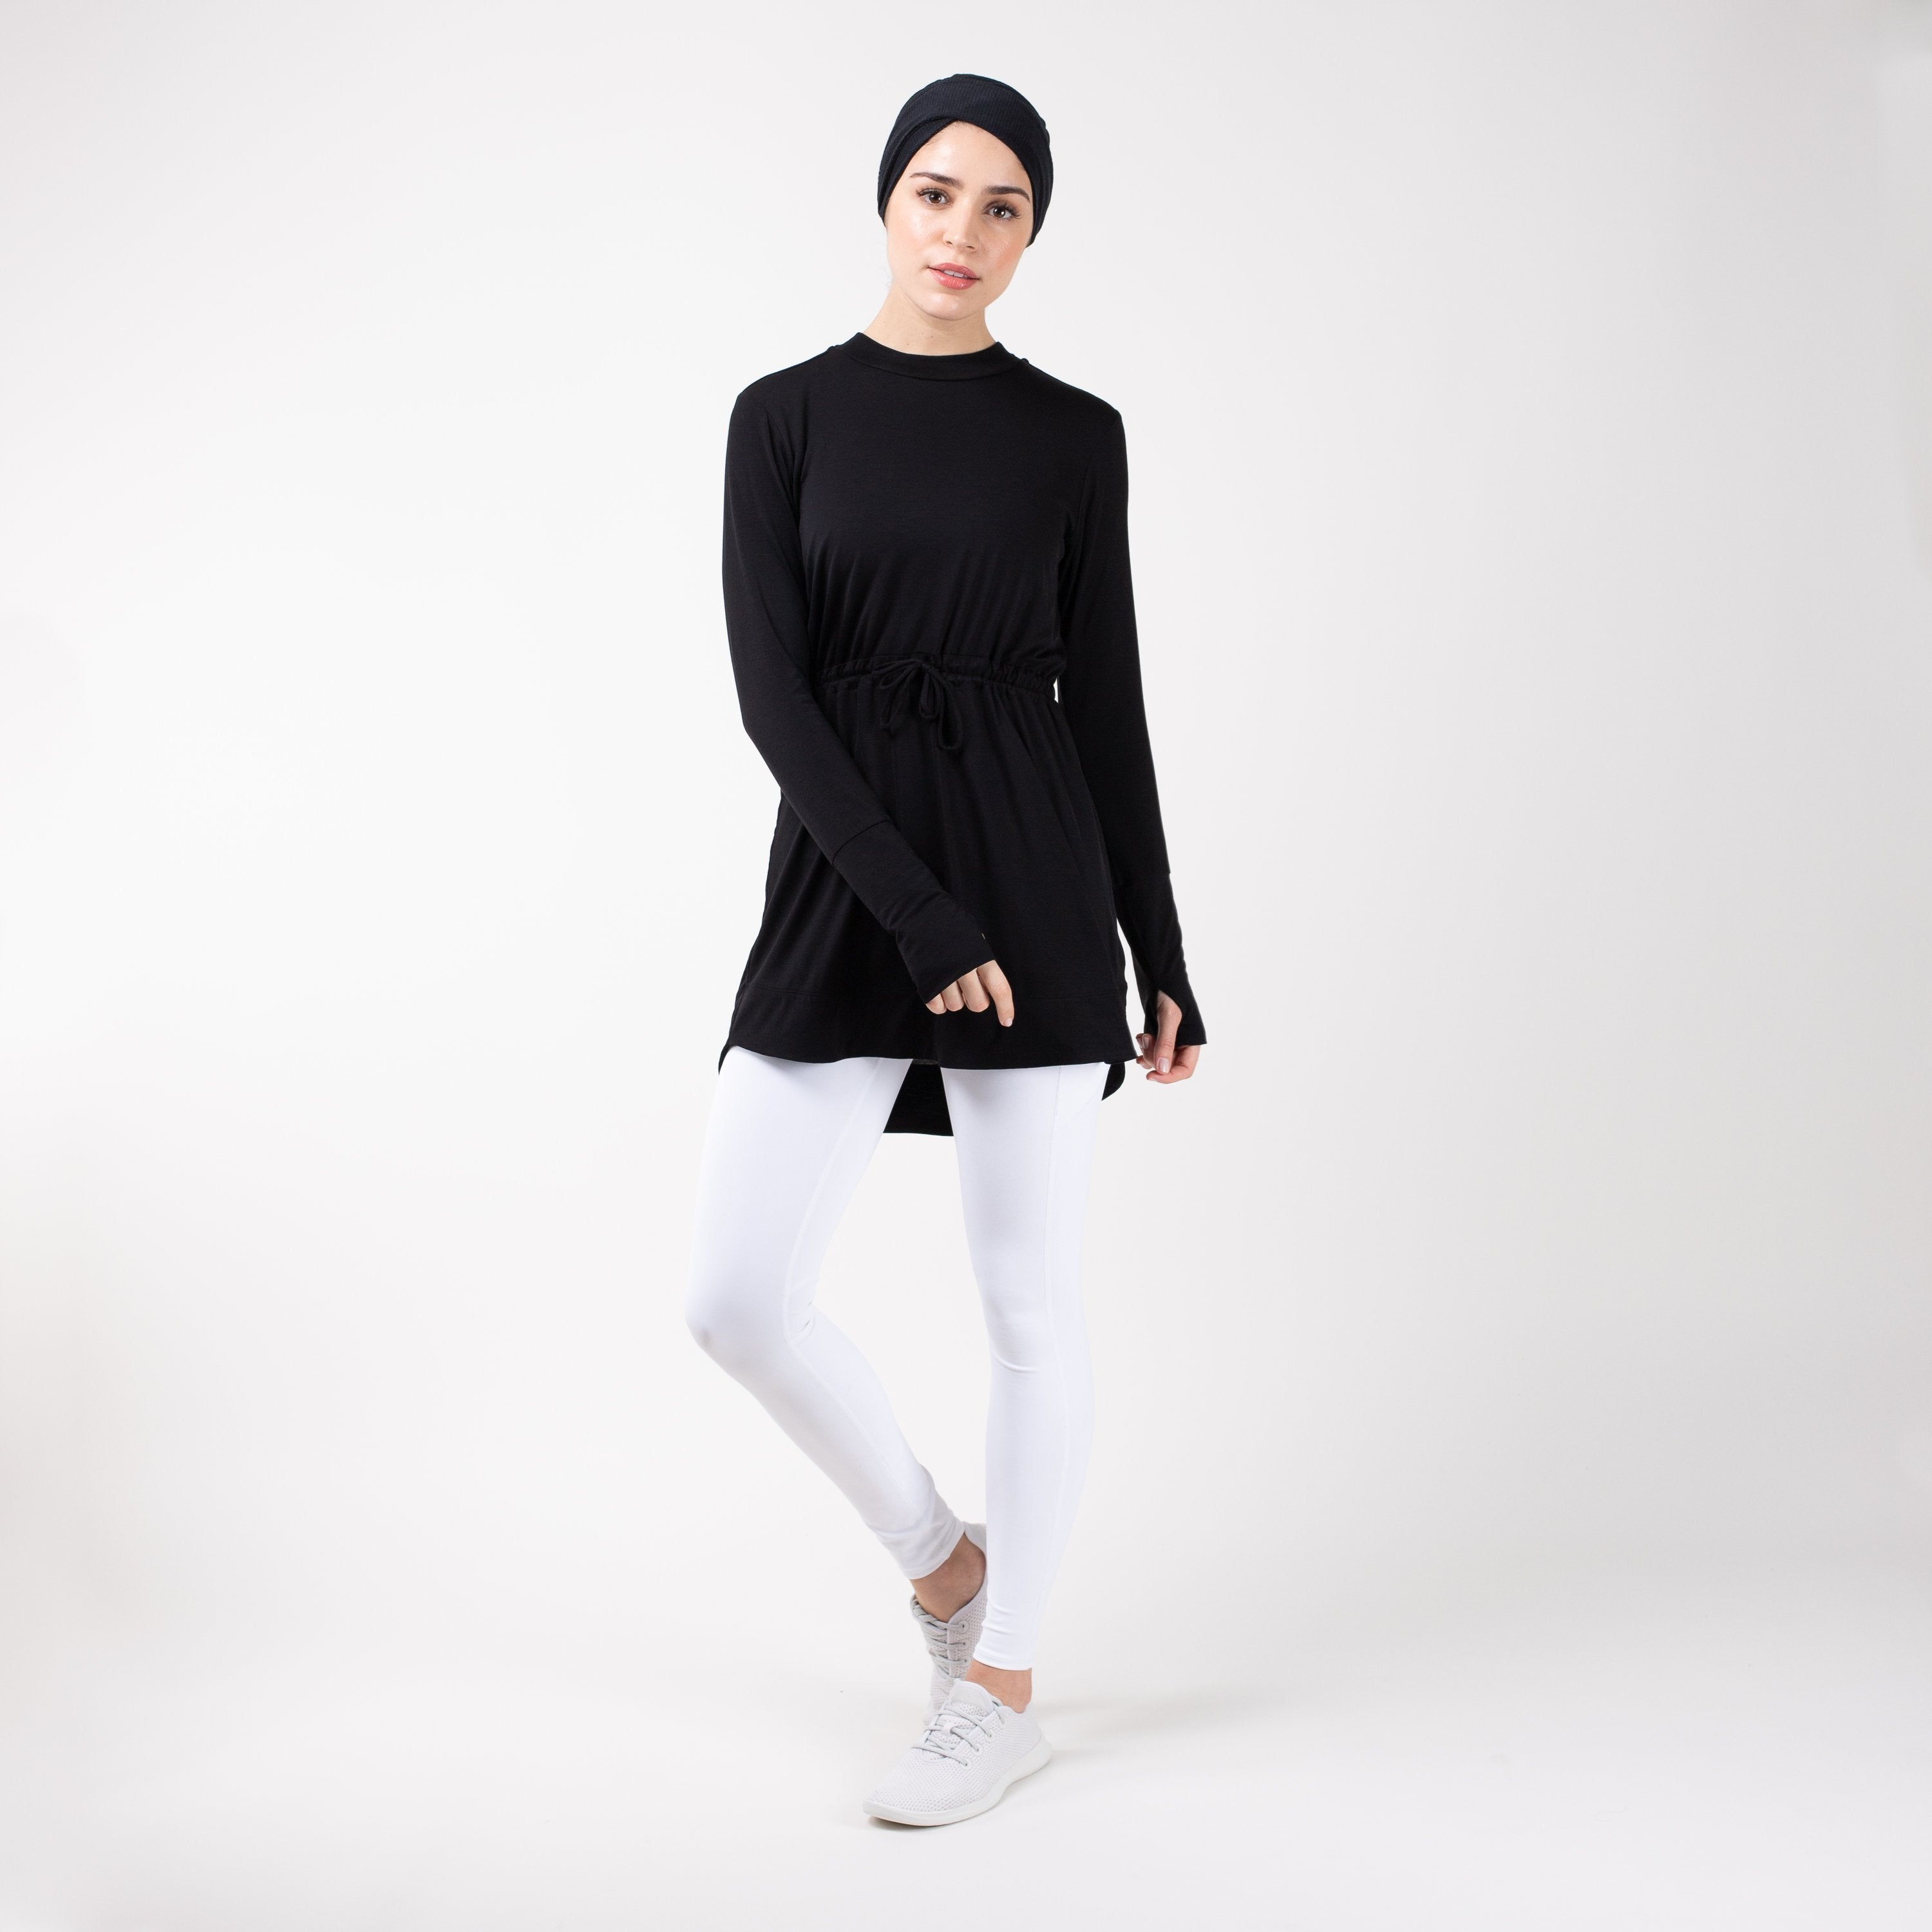 Woman in modest, black HAWA drawstring tee shirt and white leggings in front of a white backdrop.